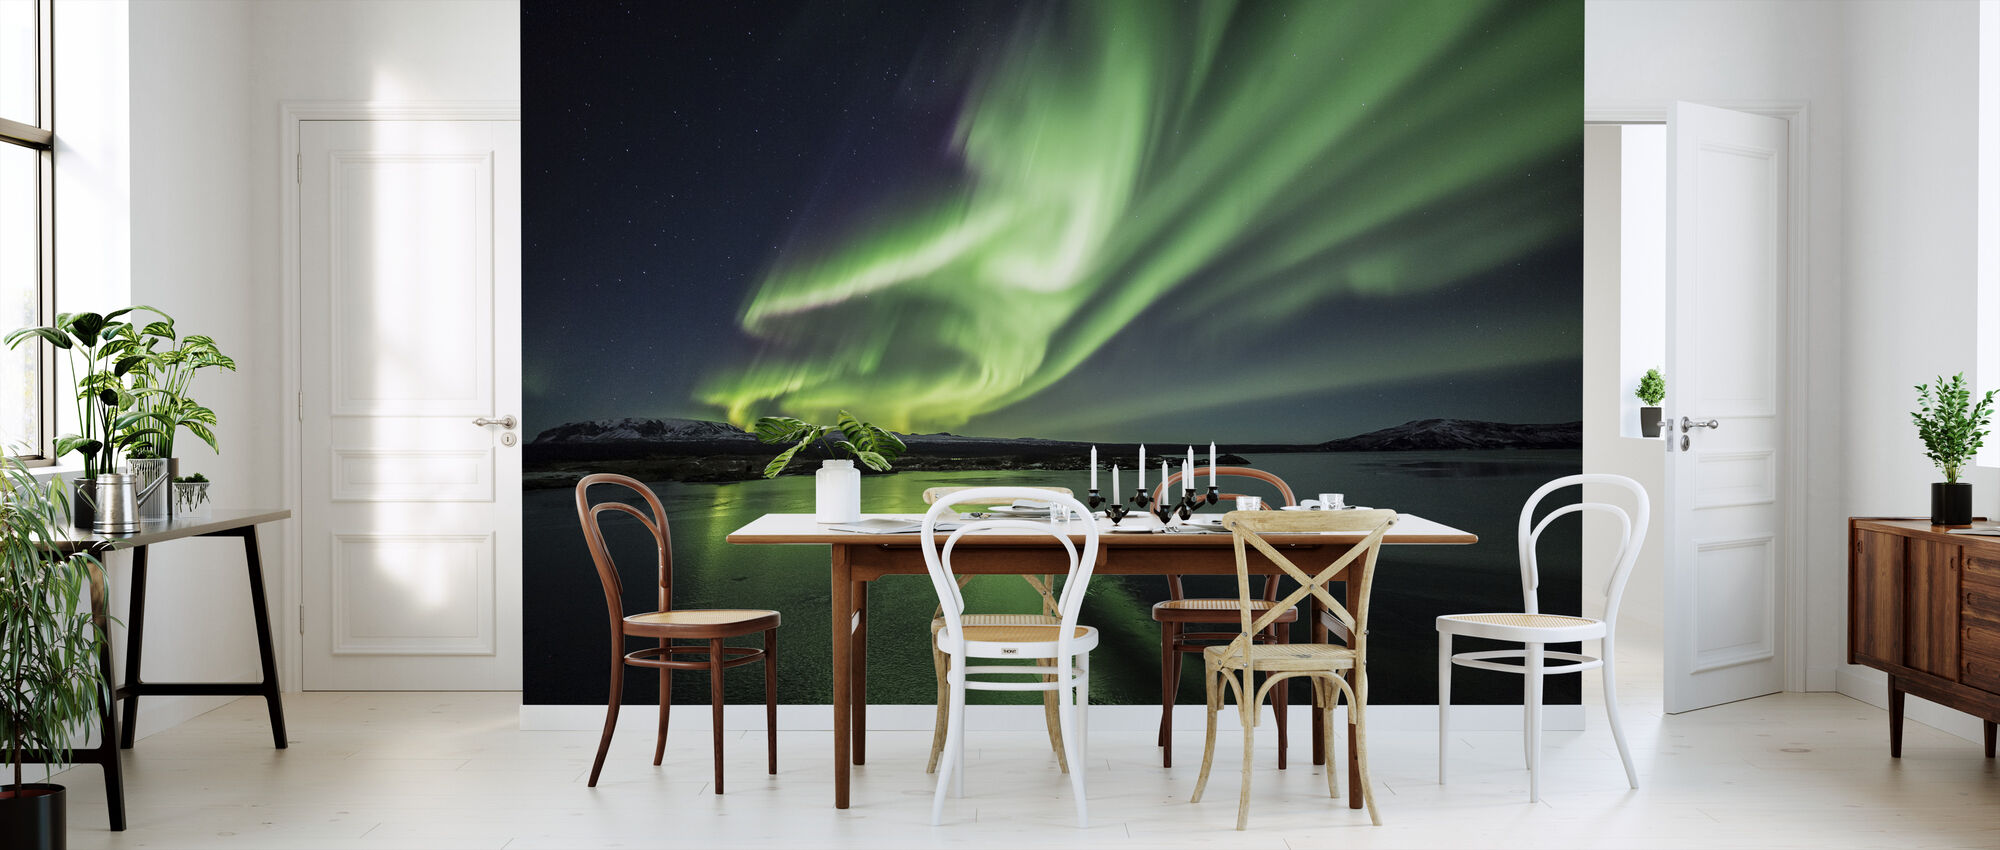 Enchanting Aurora Borealis - Wallpaper - Kitchen